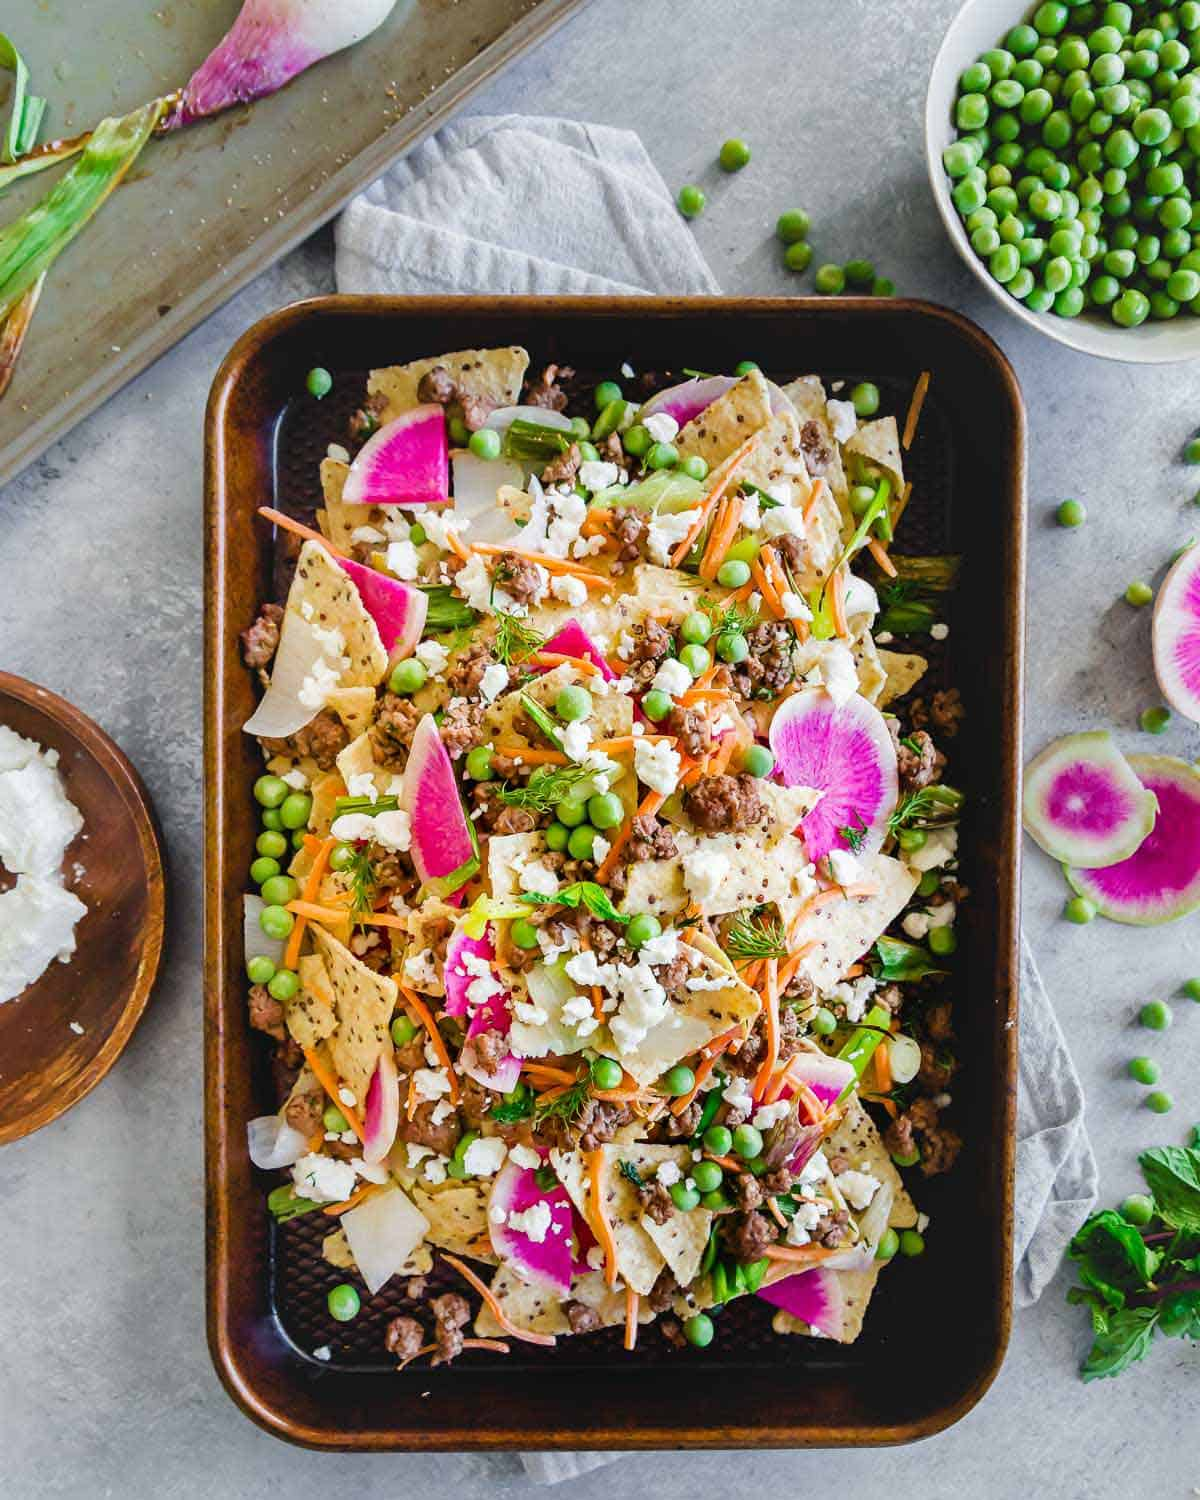 These ground American lamb nachos with carrots, onions, peas and radishes are topped with crumbled feta cheese for a bright and fresh spring take on nachos. Enjoy them straight off the baking sheet for an easy seasonal dinner or appetizer.